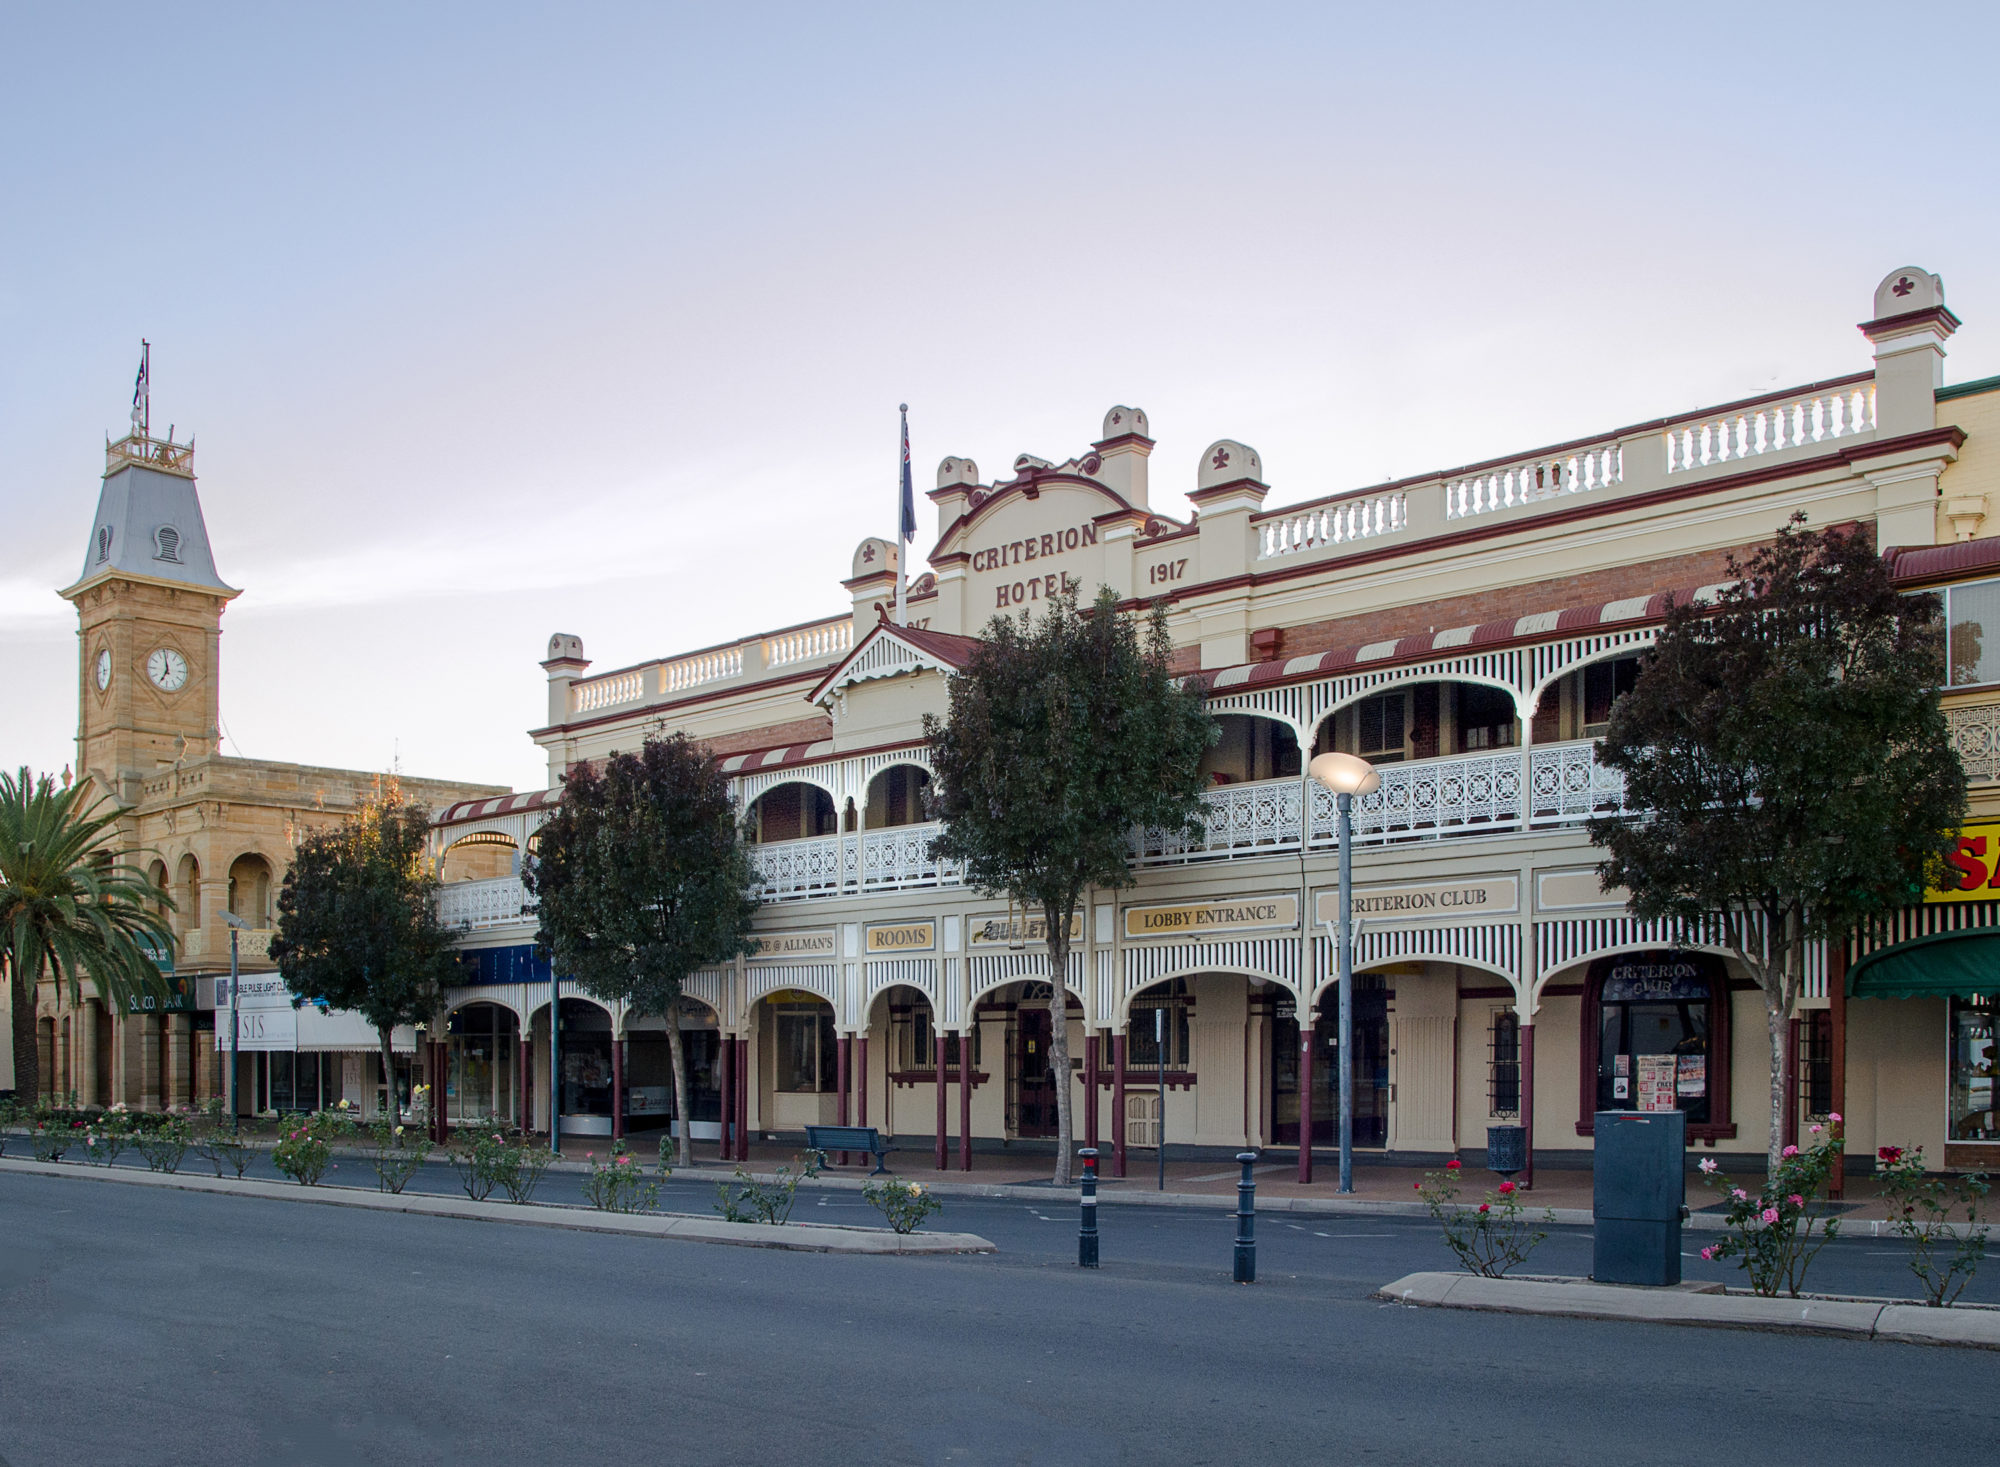 The-Criterion-warwick-accommodation-hotel-front